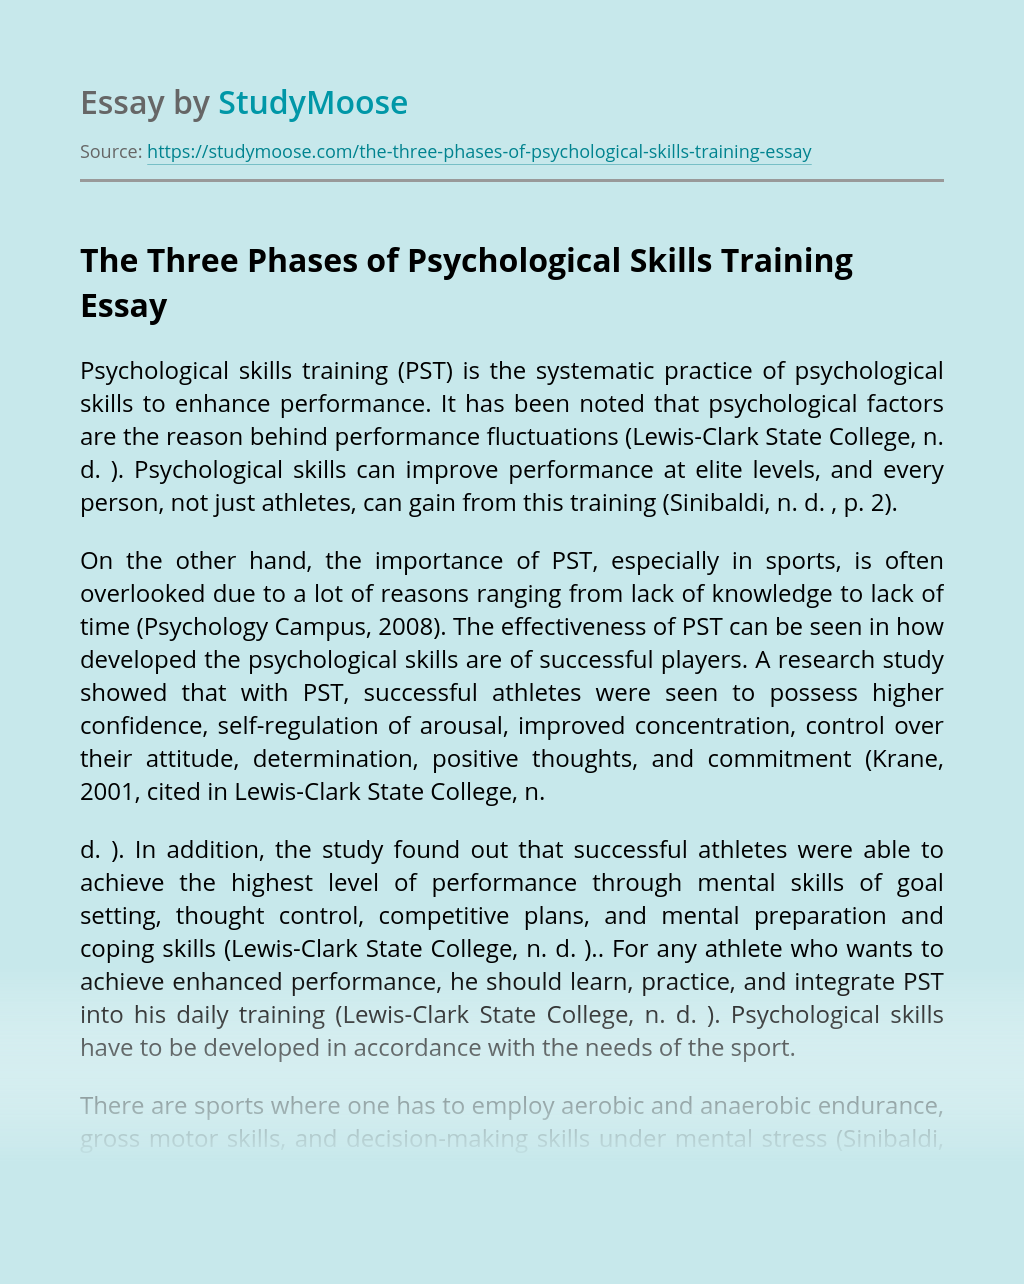 The Three Phases of Psychological Skills Training